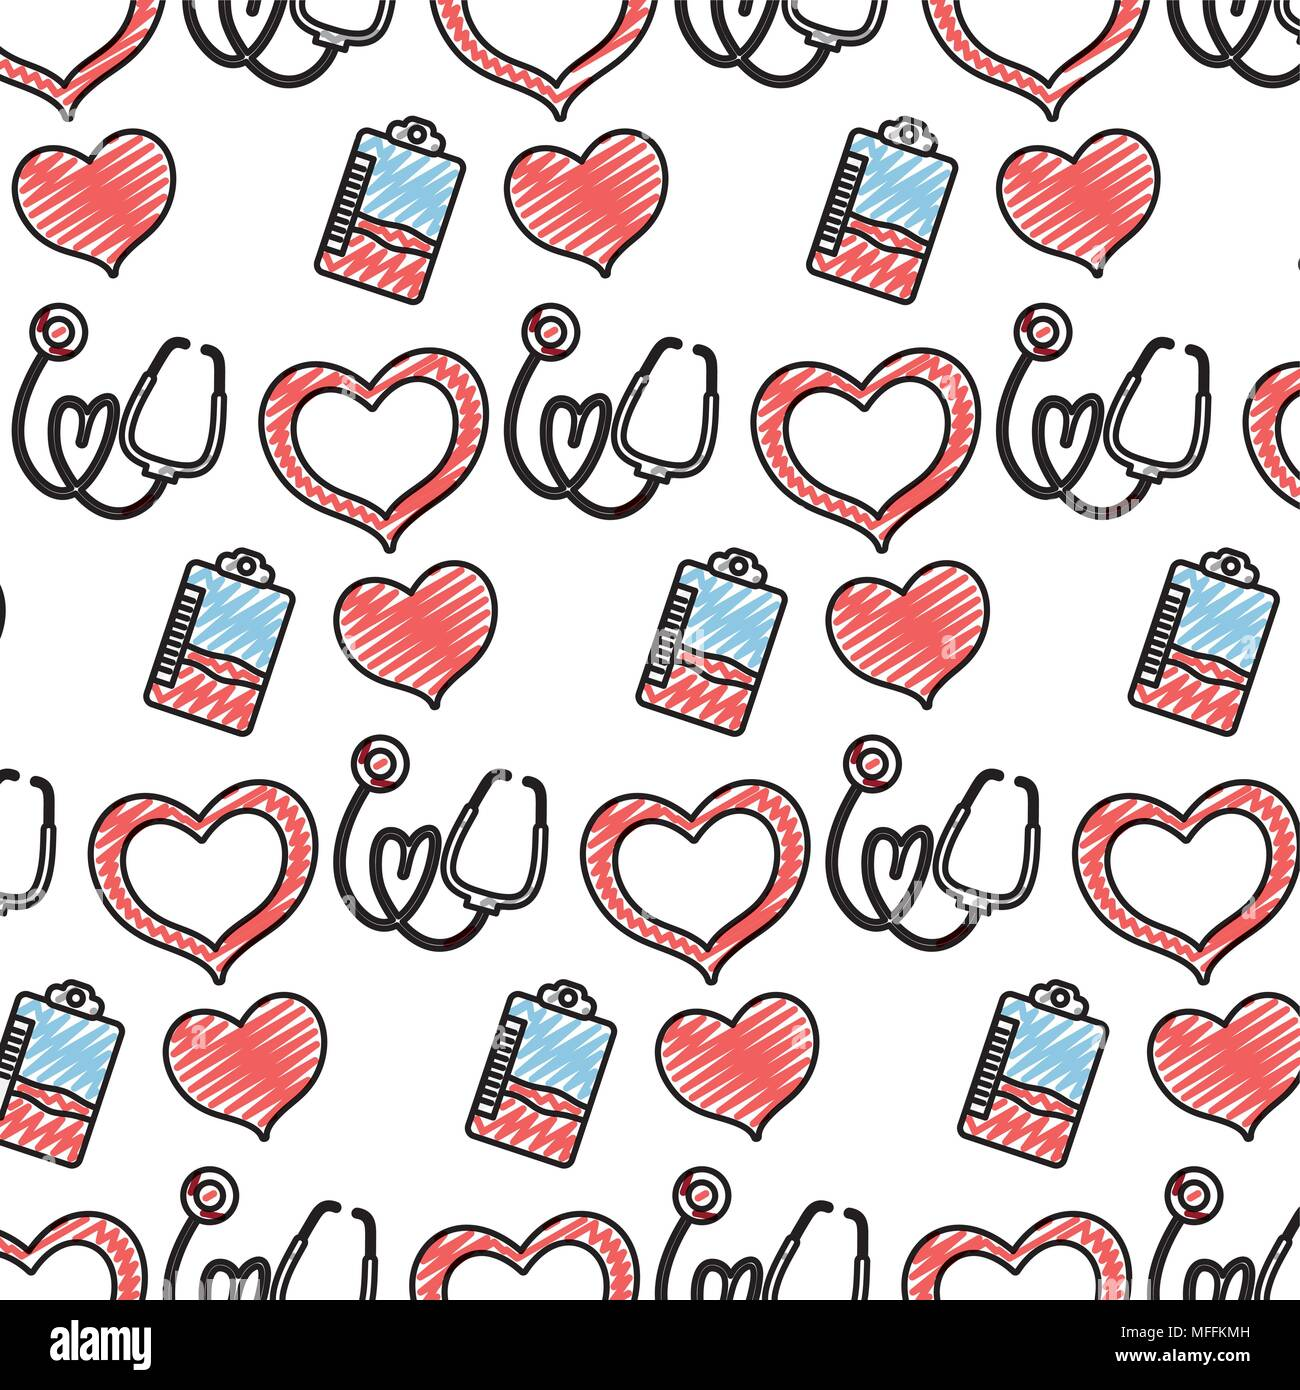 doodle blood donation transfusion event background, - Stock Image